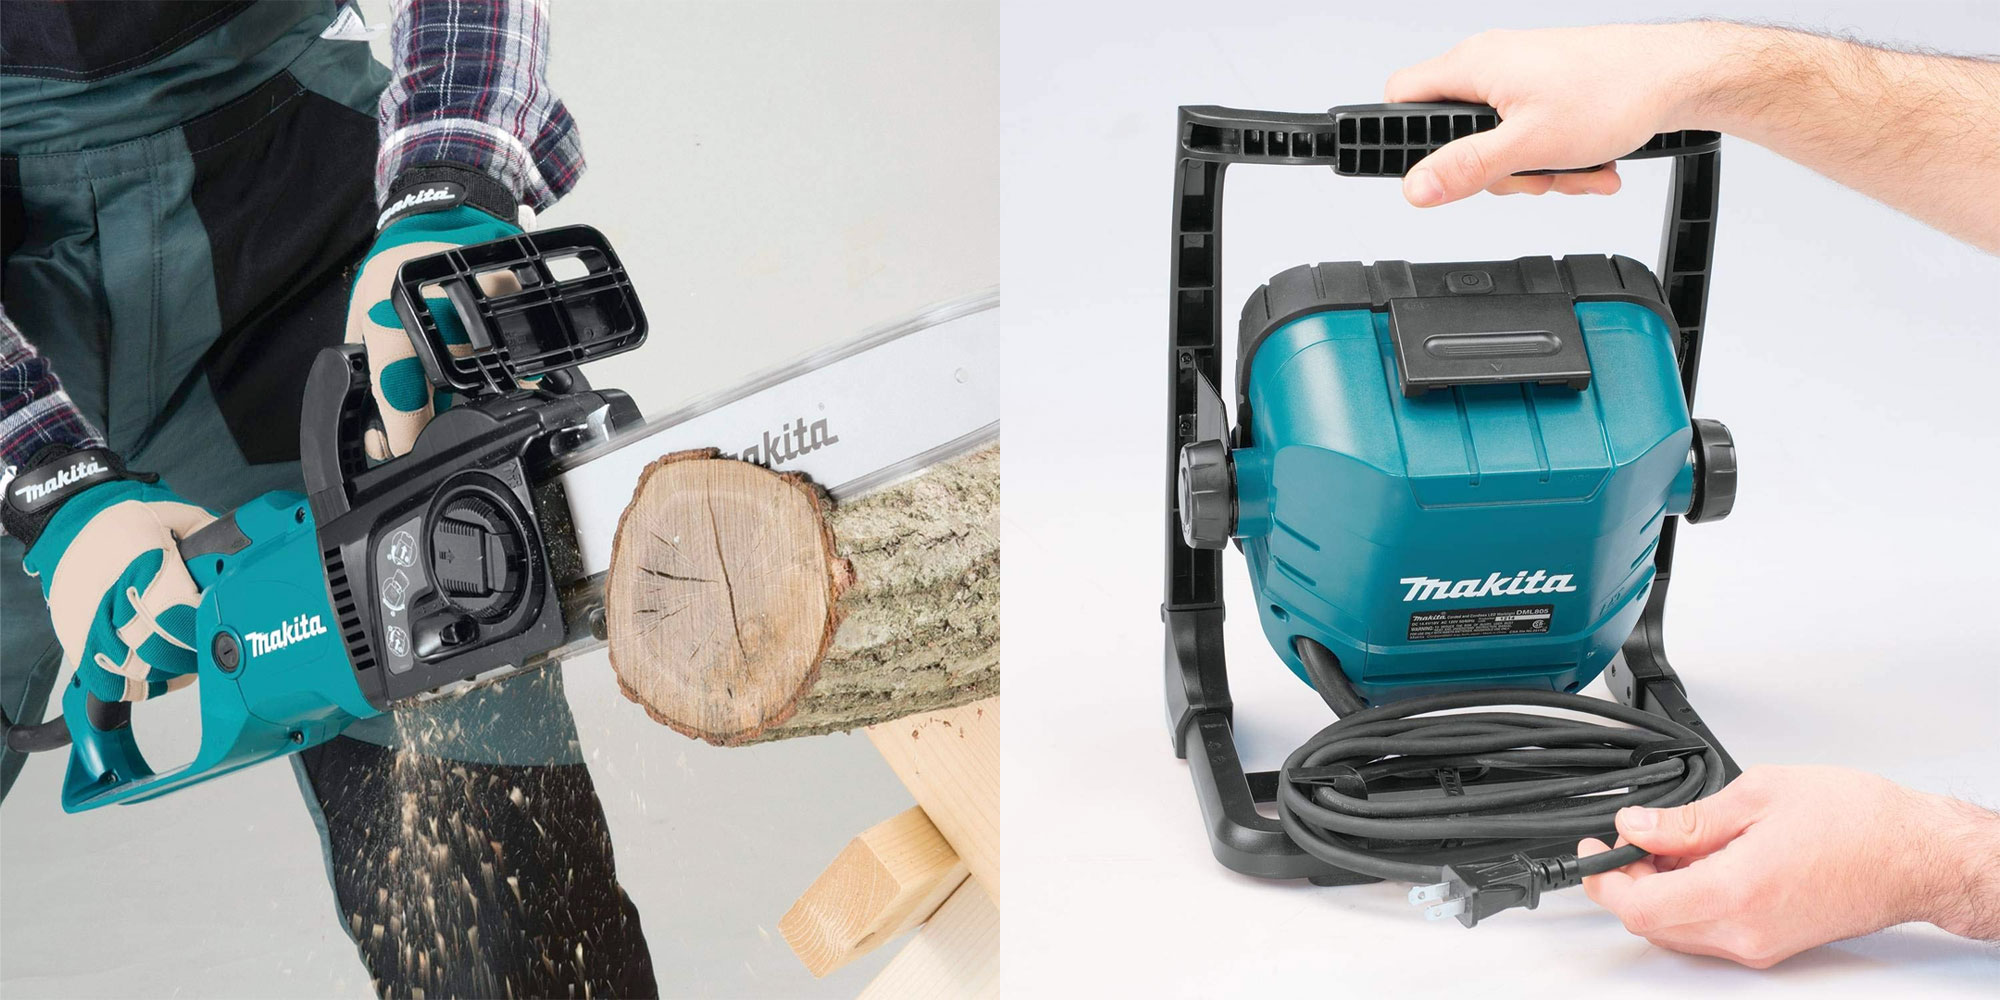 Save on Makita electric tools for spring in today's Amazon Gold Box from $73 shipped